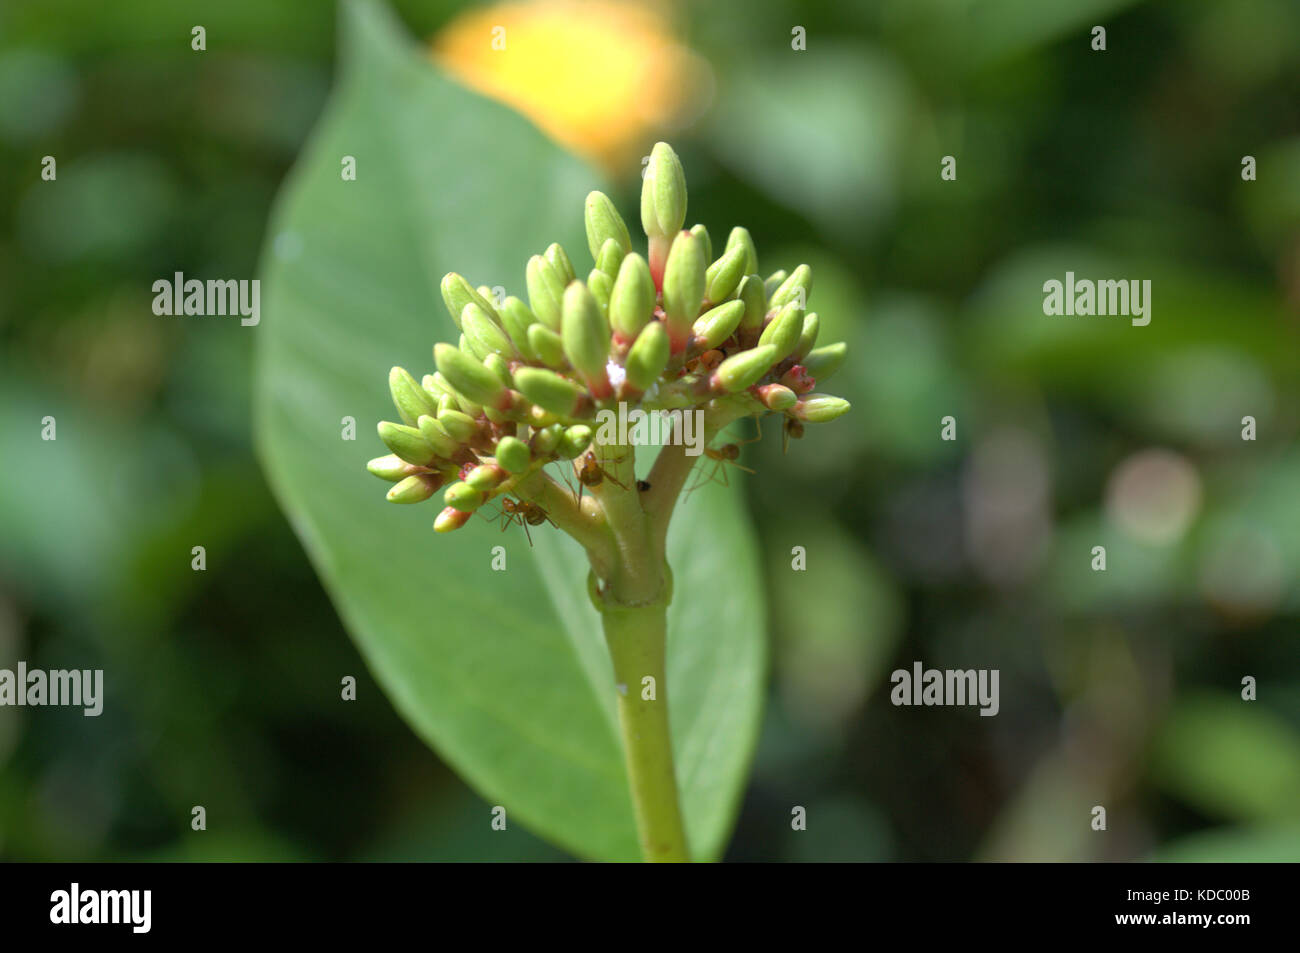 A small flower with some ants searching for food. - Stock Image